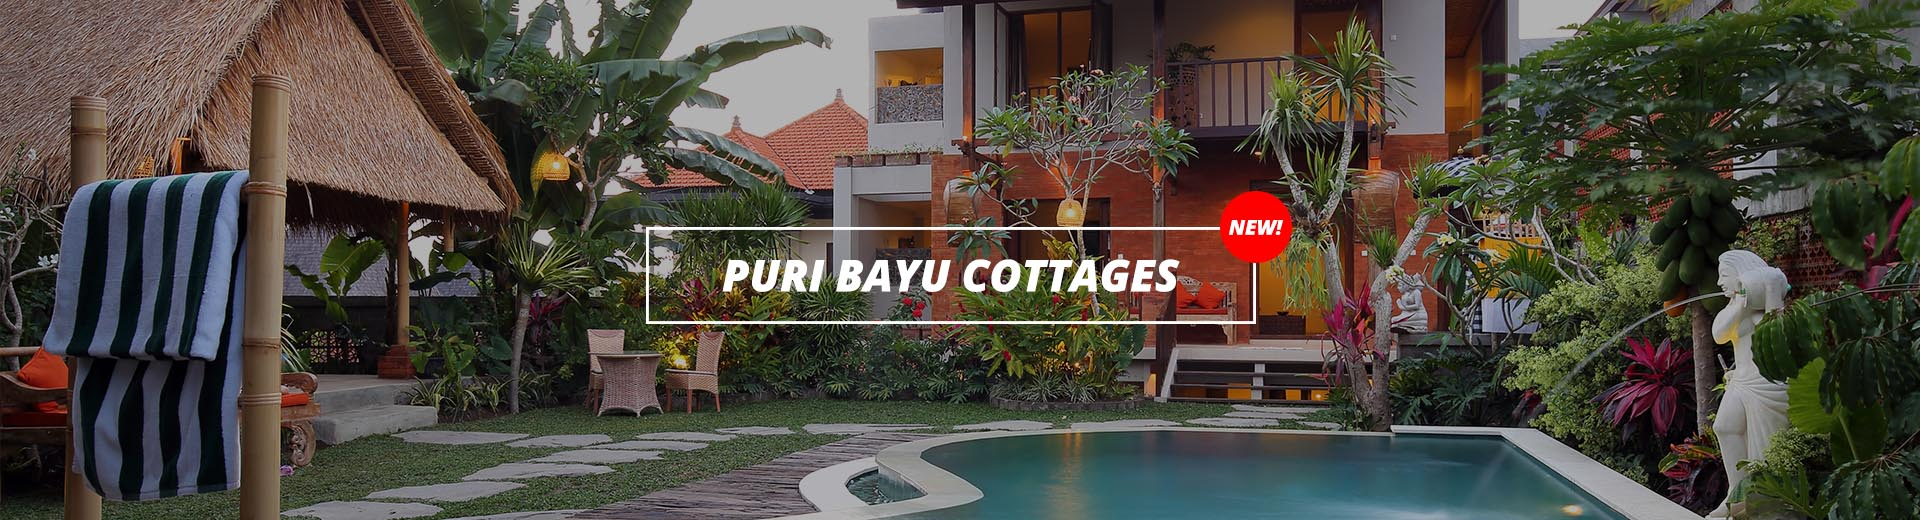 Puri Bayu Cottages Ubud